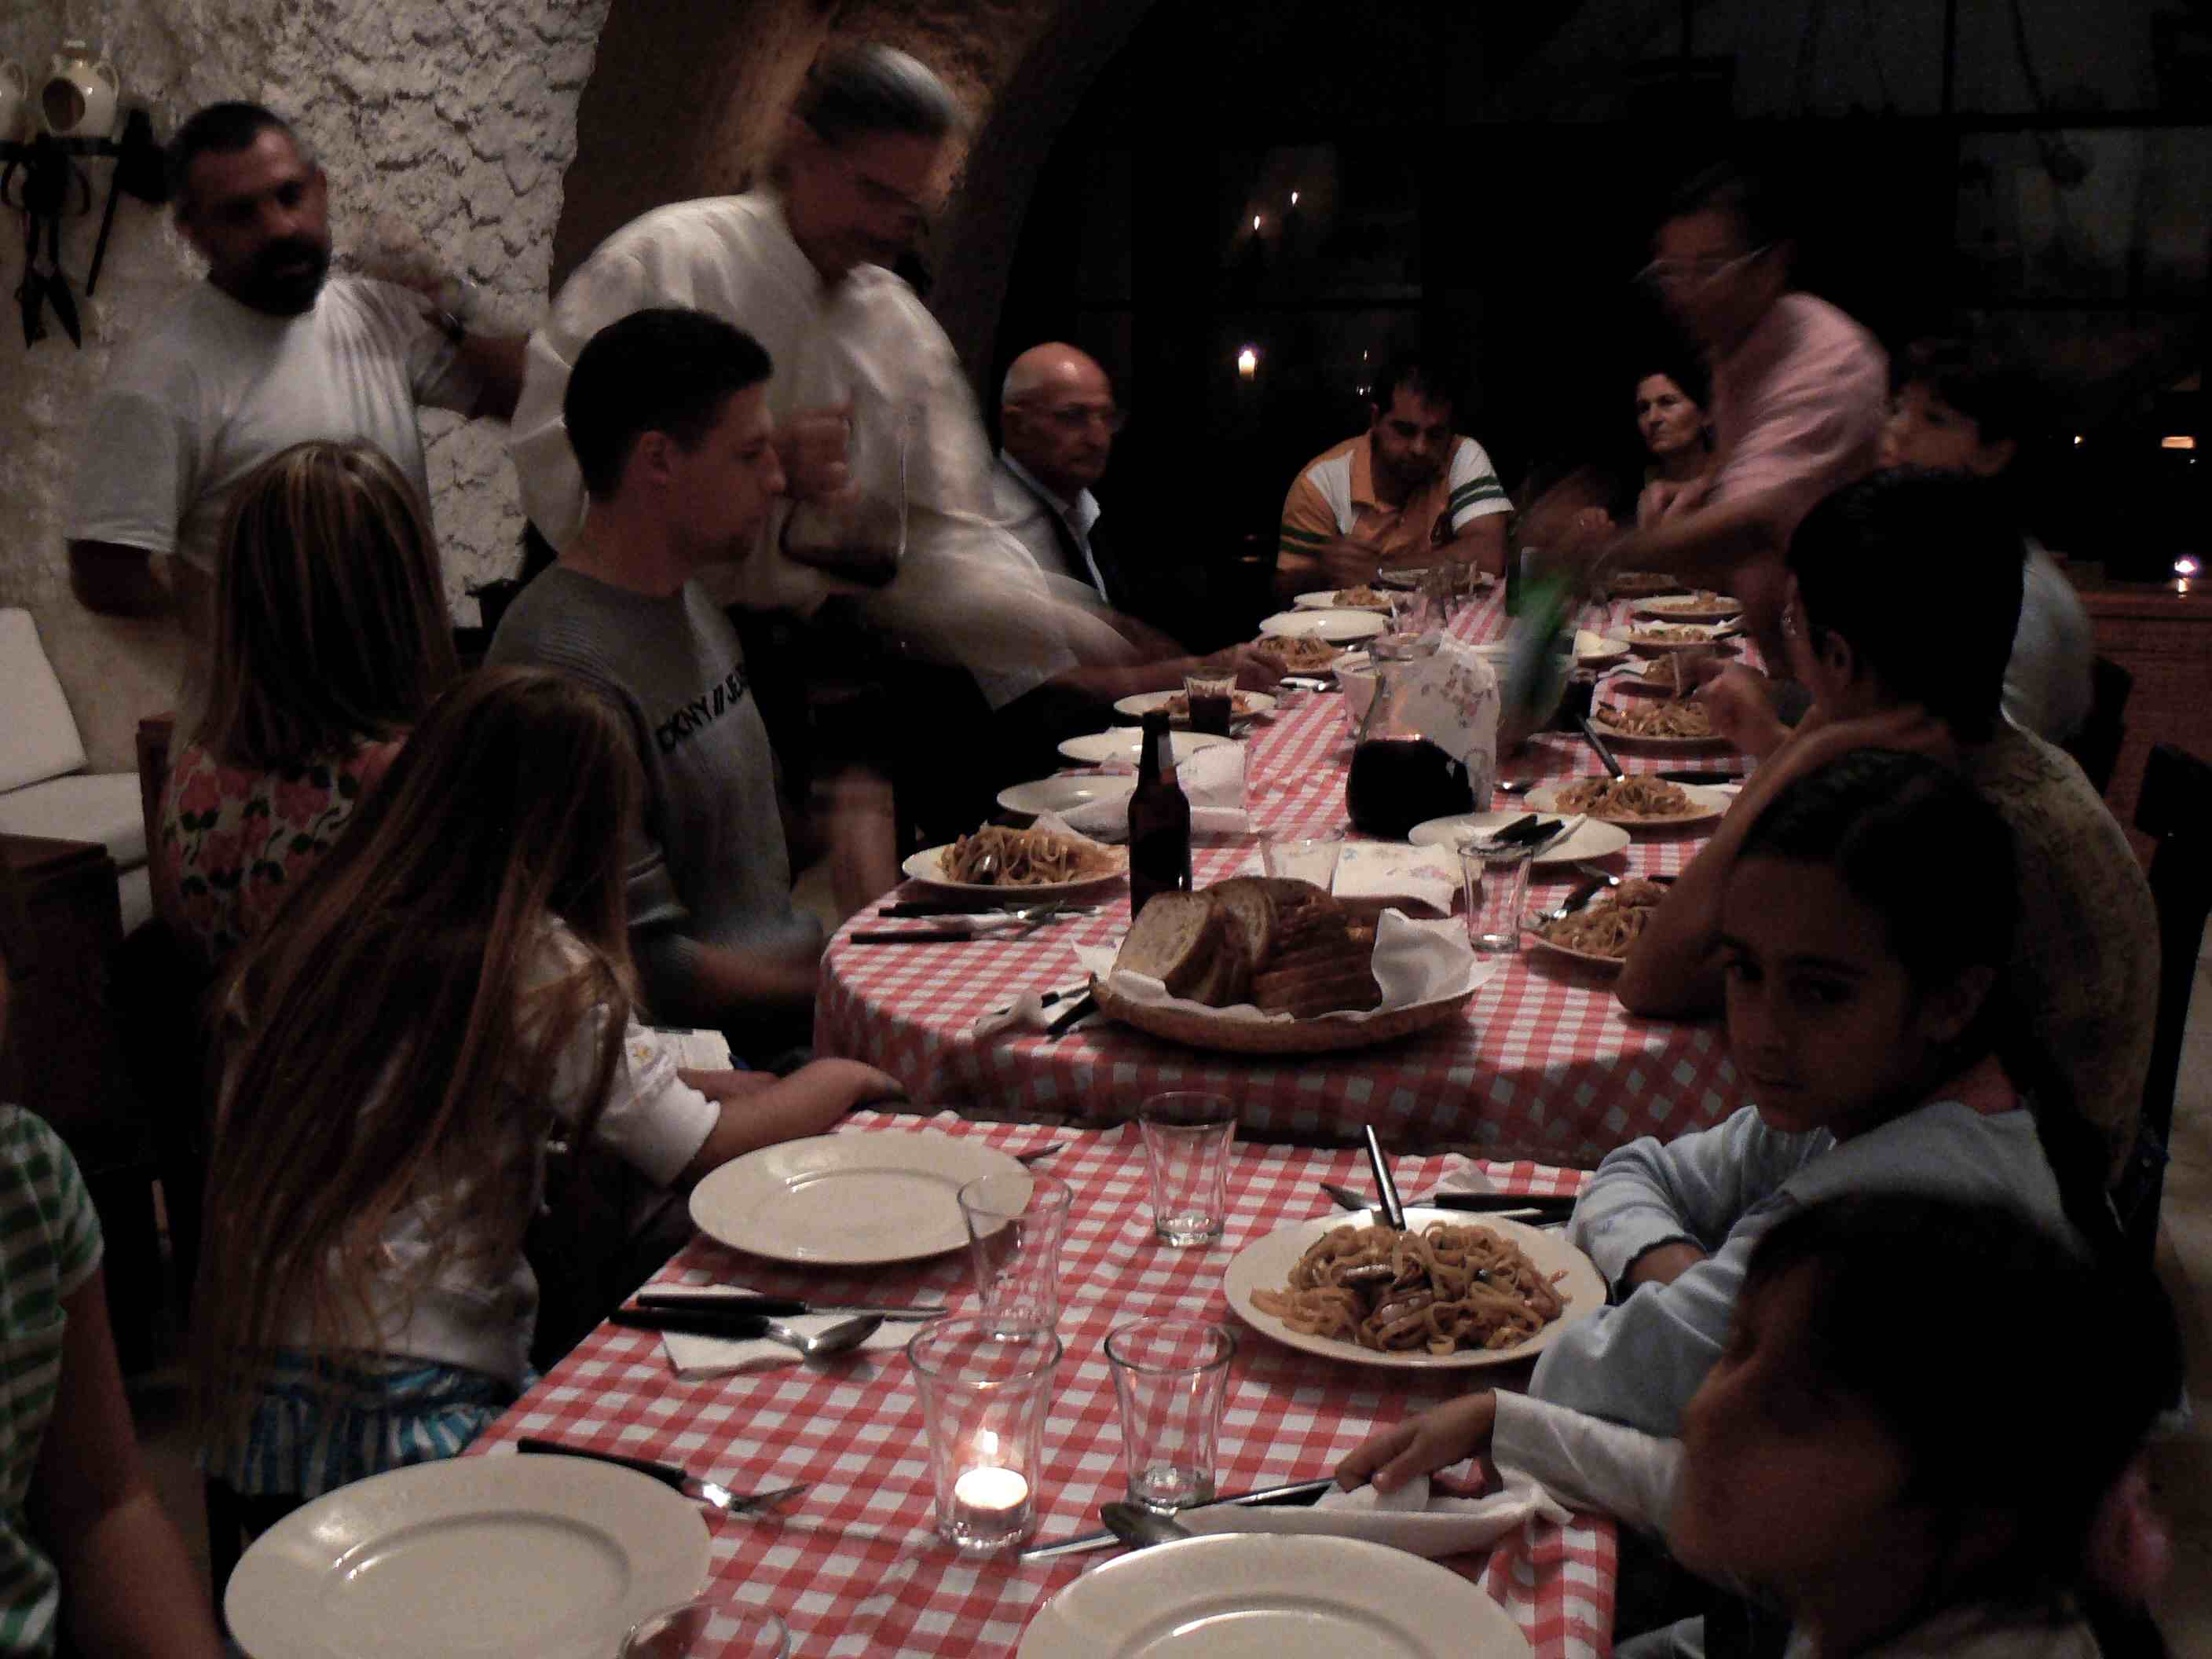 Dinner with friends and family, Italian style!